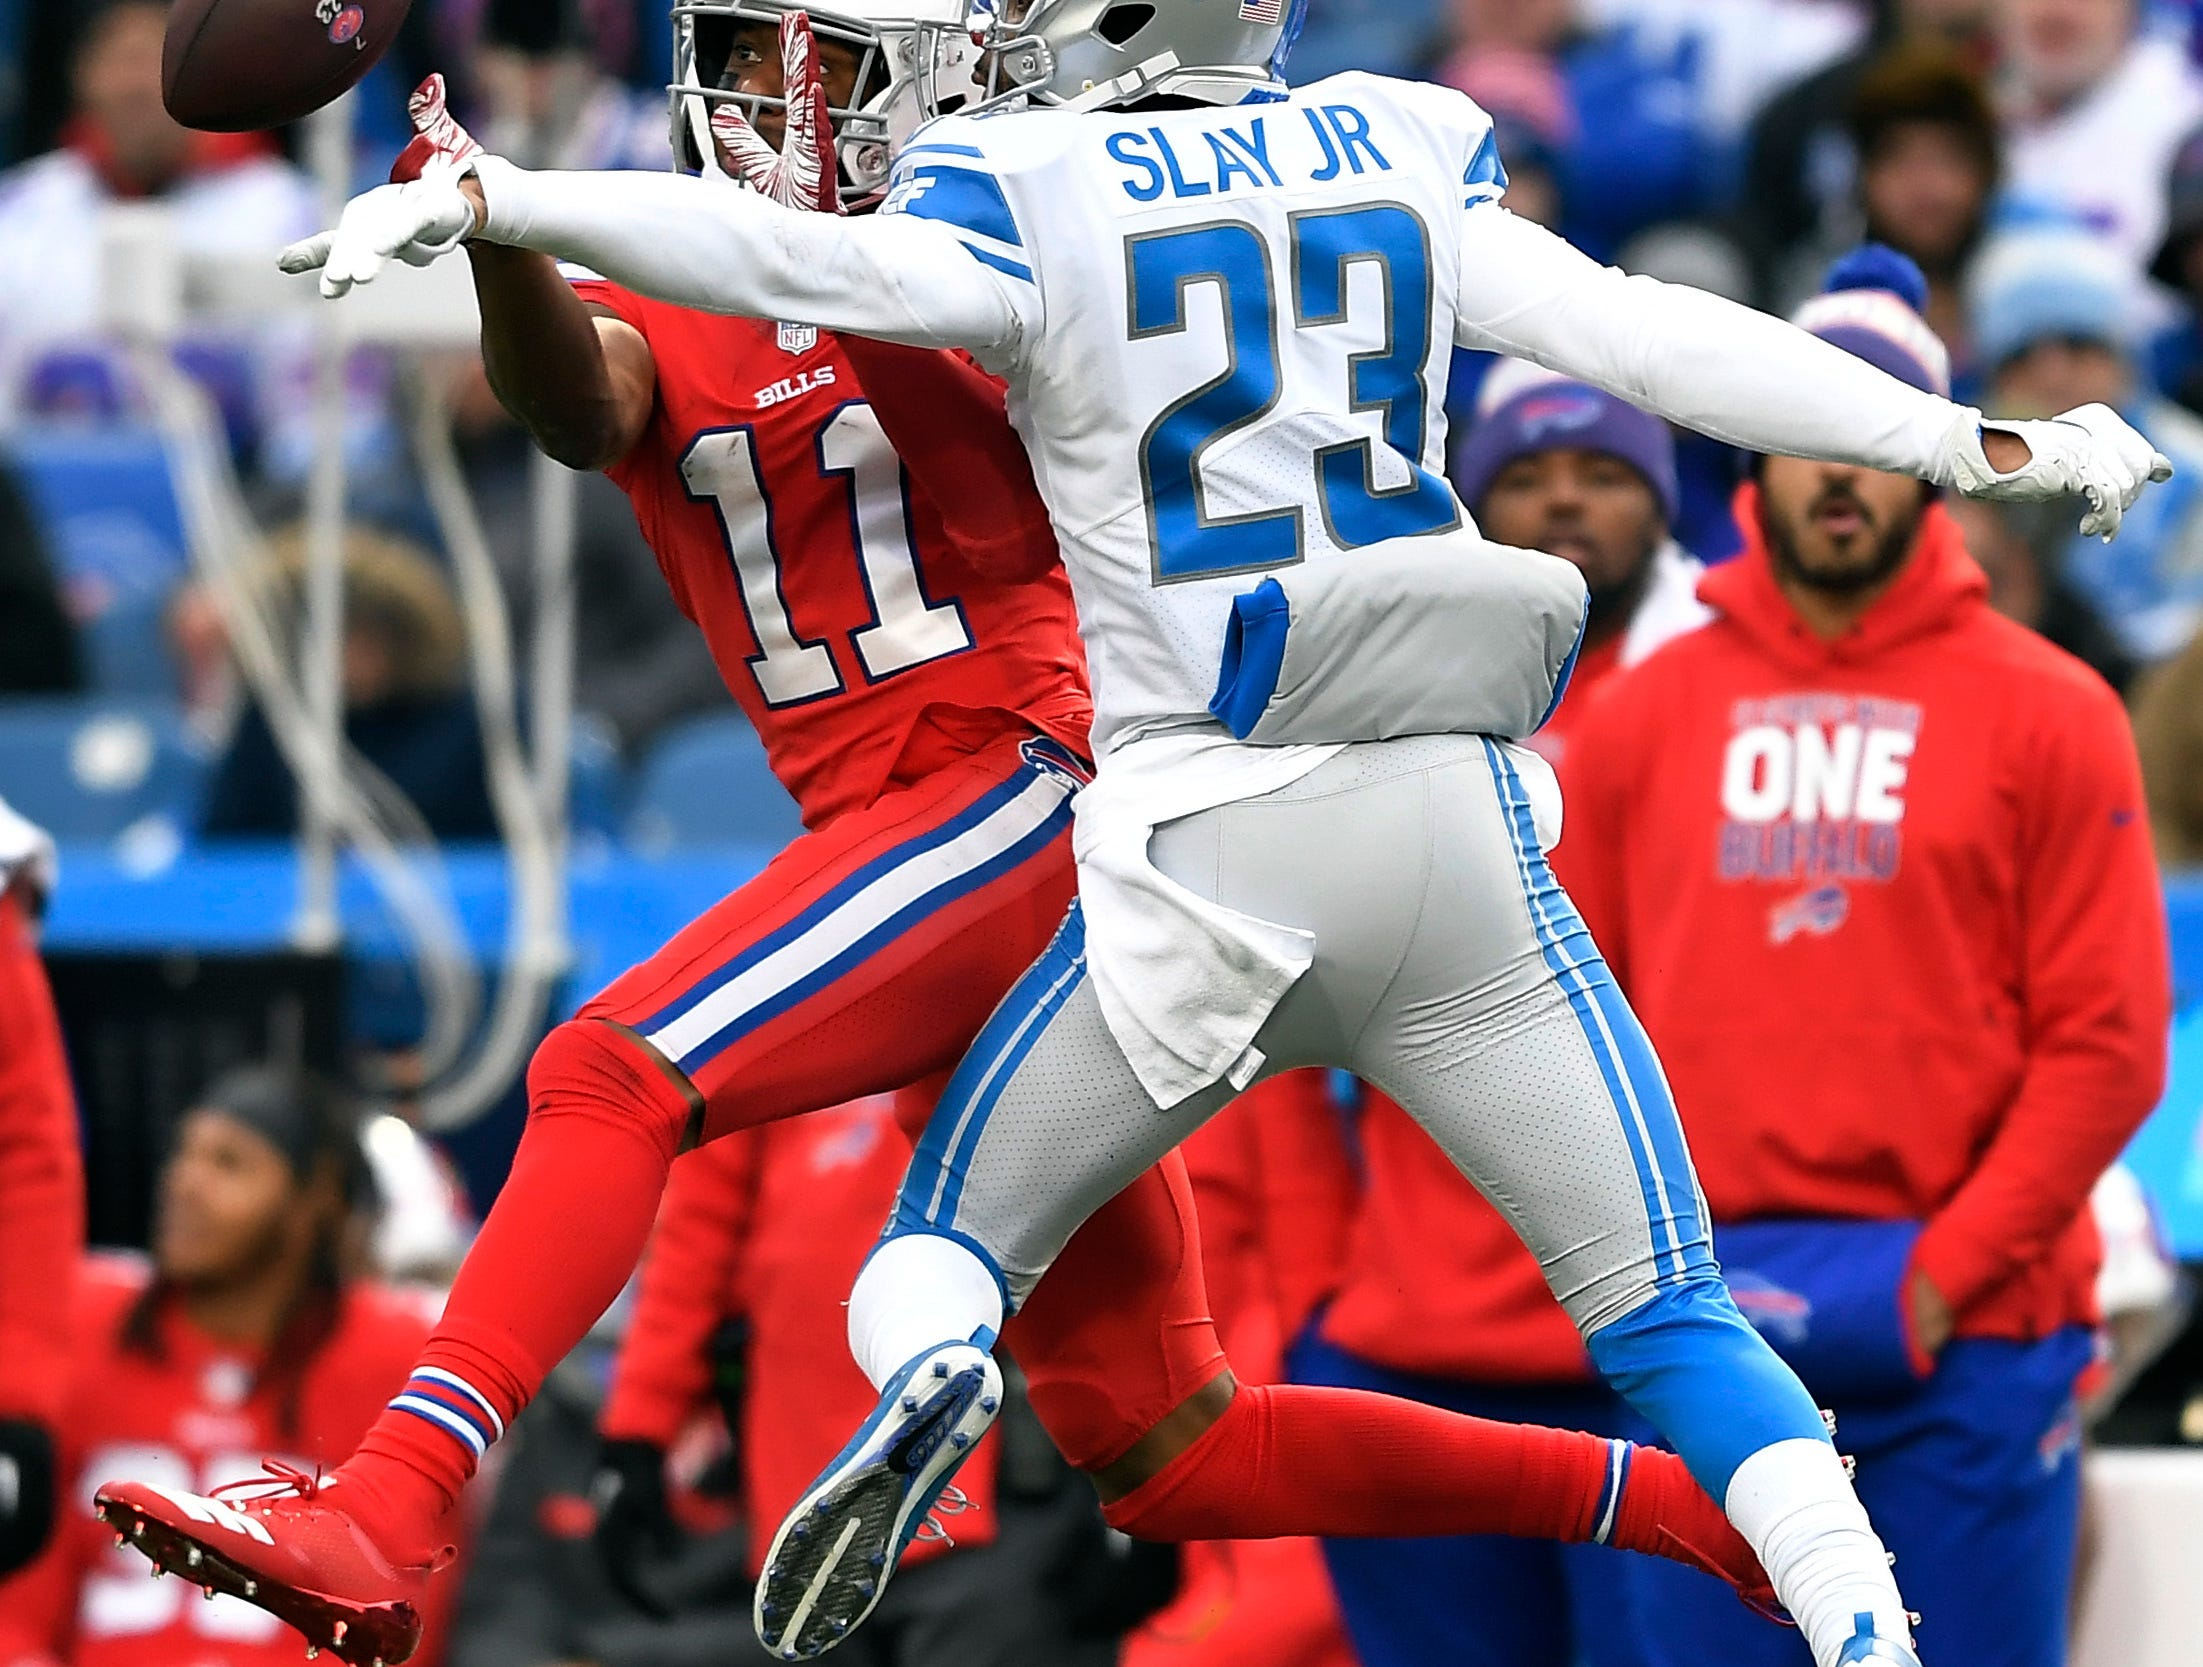 Buffalo Bills wide receiver Zay Jones (11) can't catch a pass under pressure from Detroit Lions cornerback Darius Slay (23) during the second half.